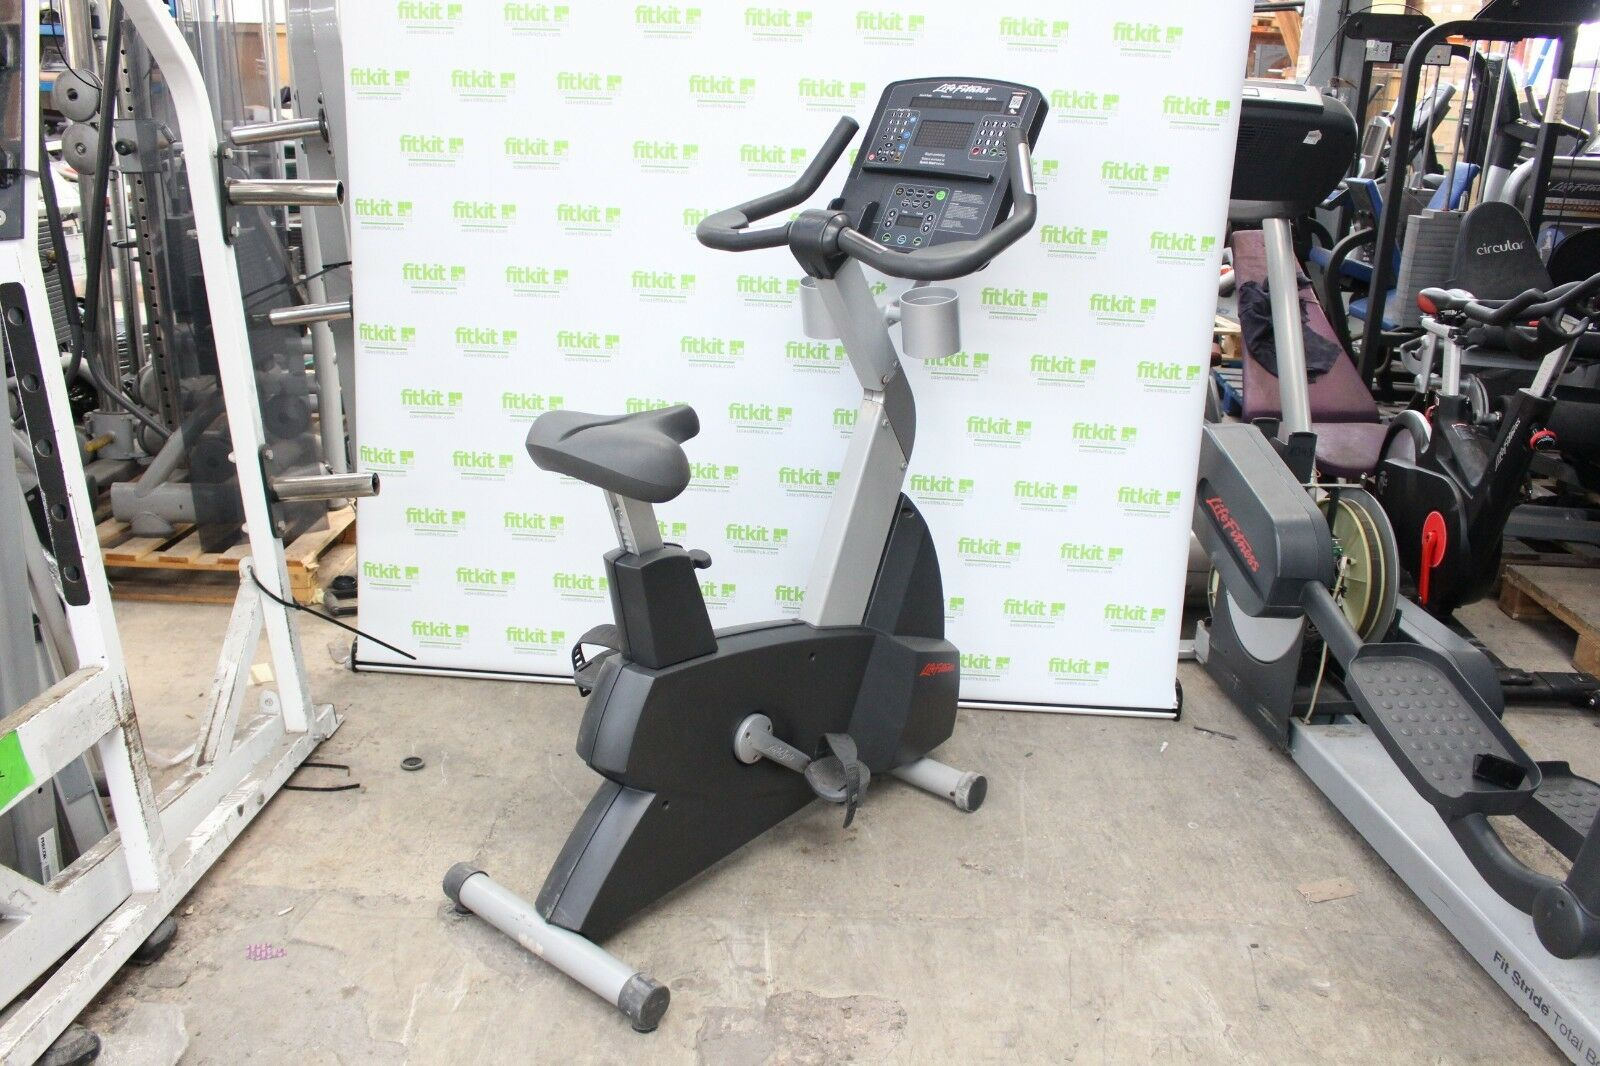 Life Fitness Integrity Series Upright Bike 95Ci - Commercial Gym Equipment